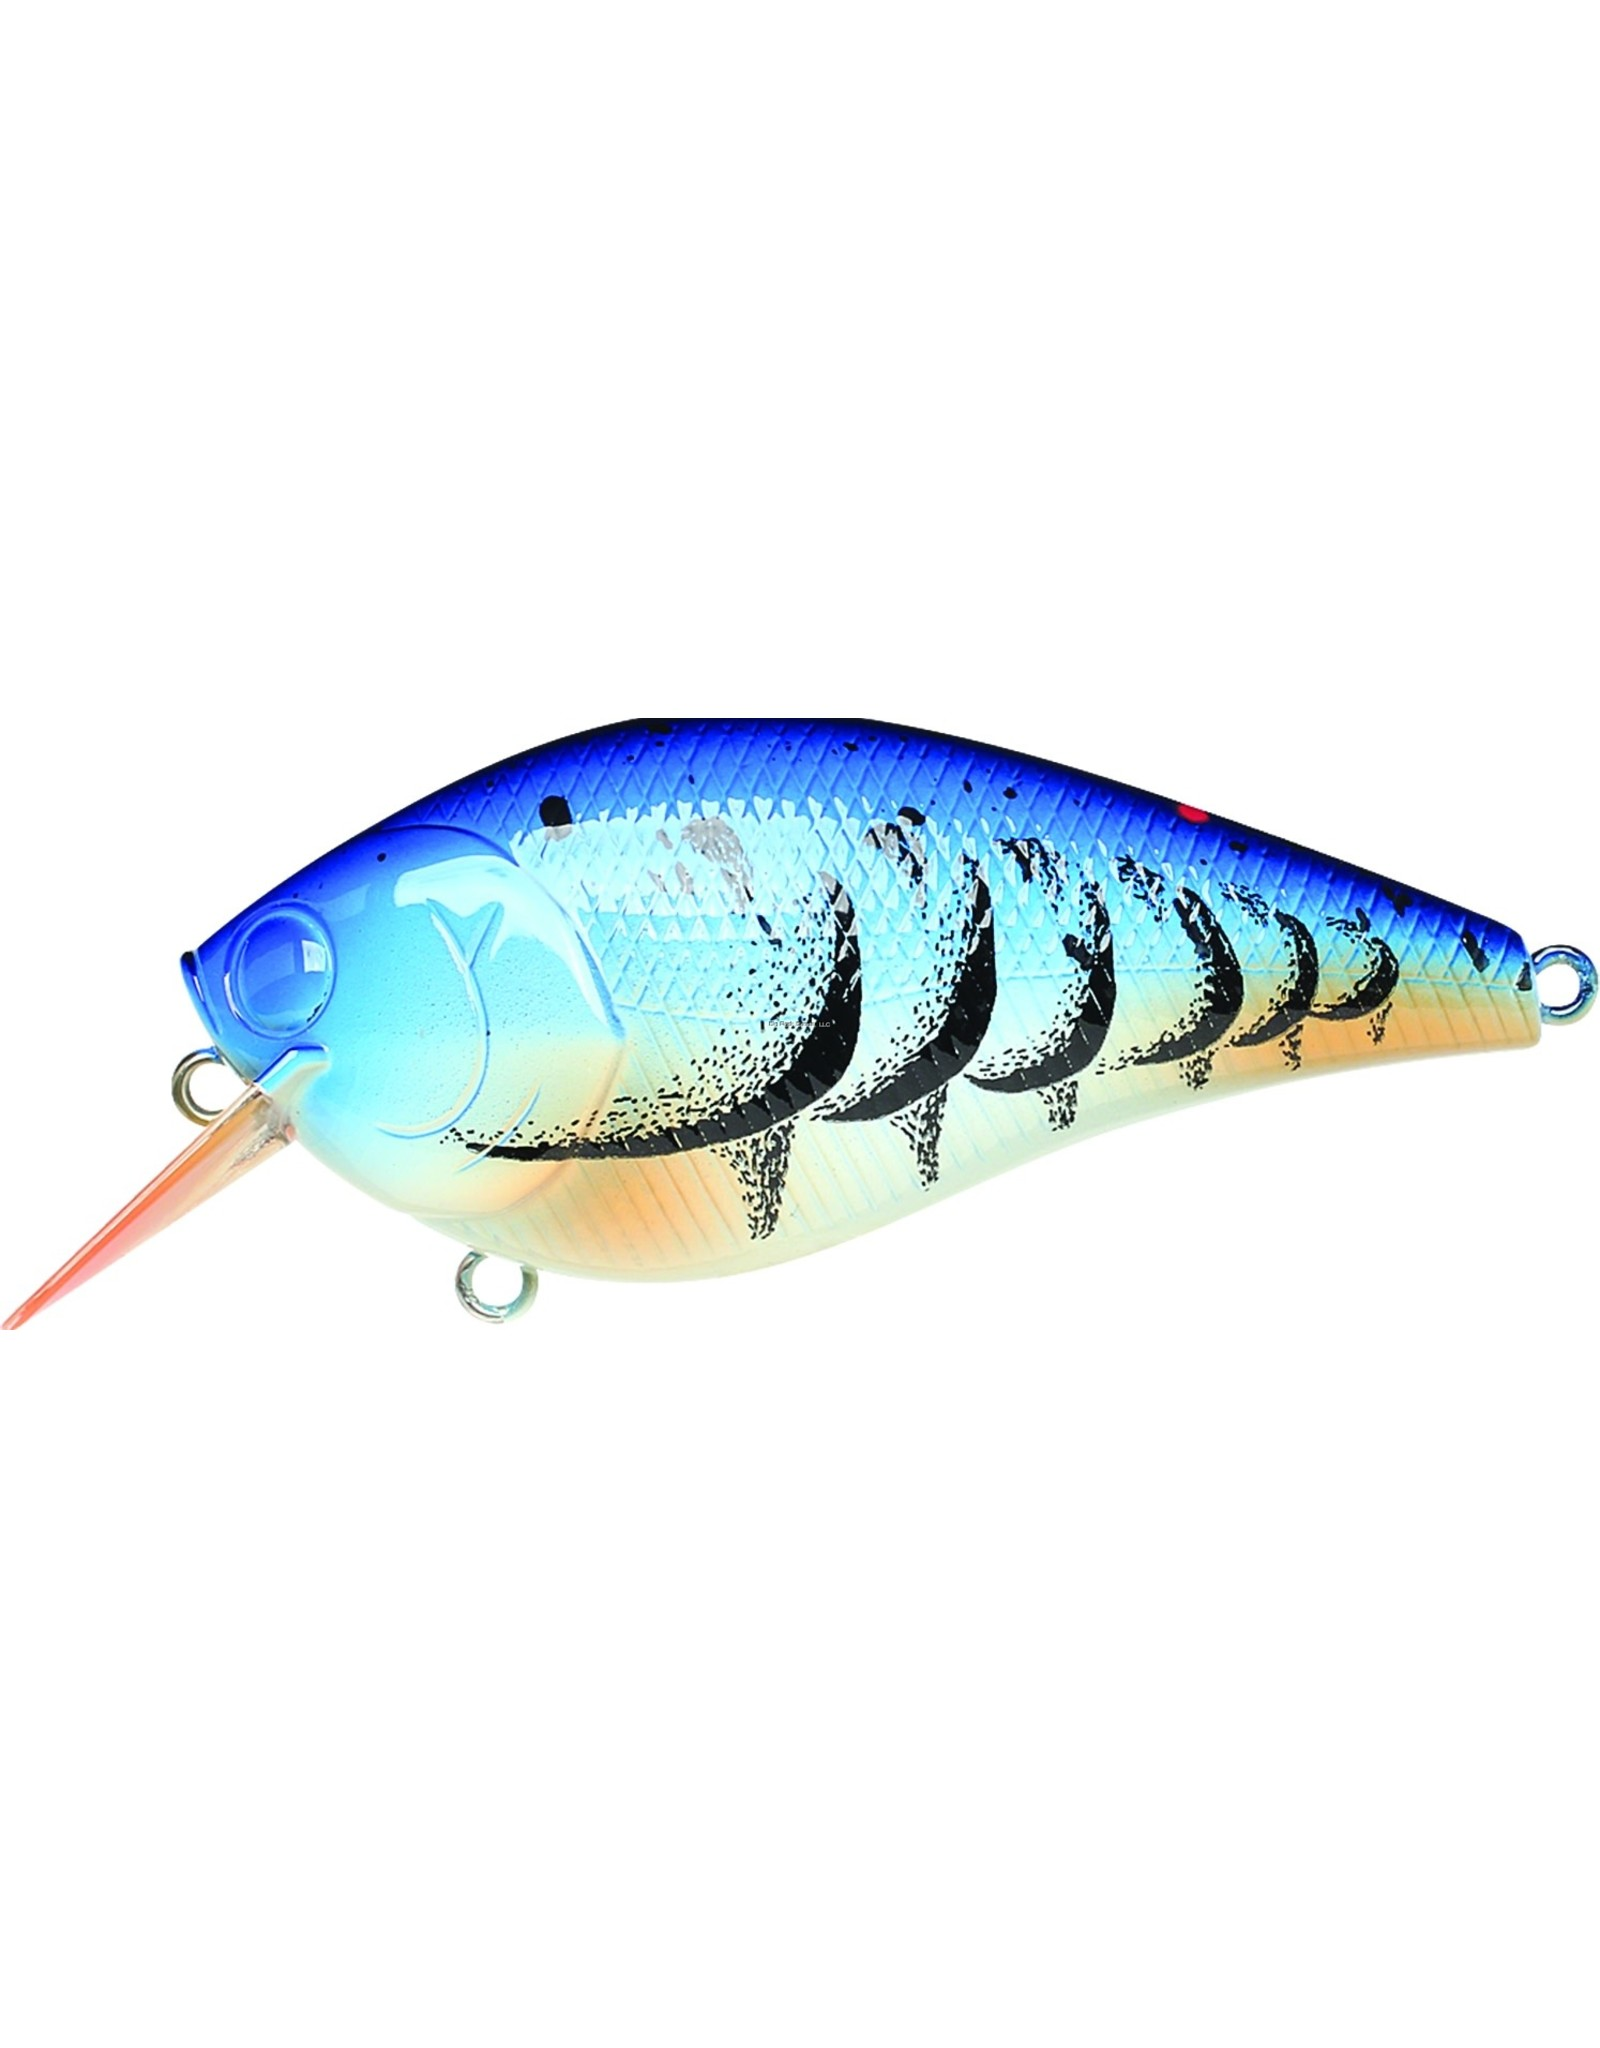 Lucky Craft LC 2.5 Floating Crankbait